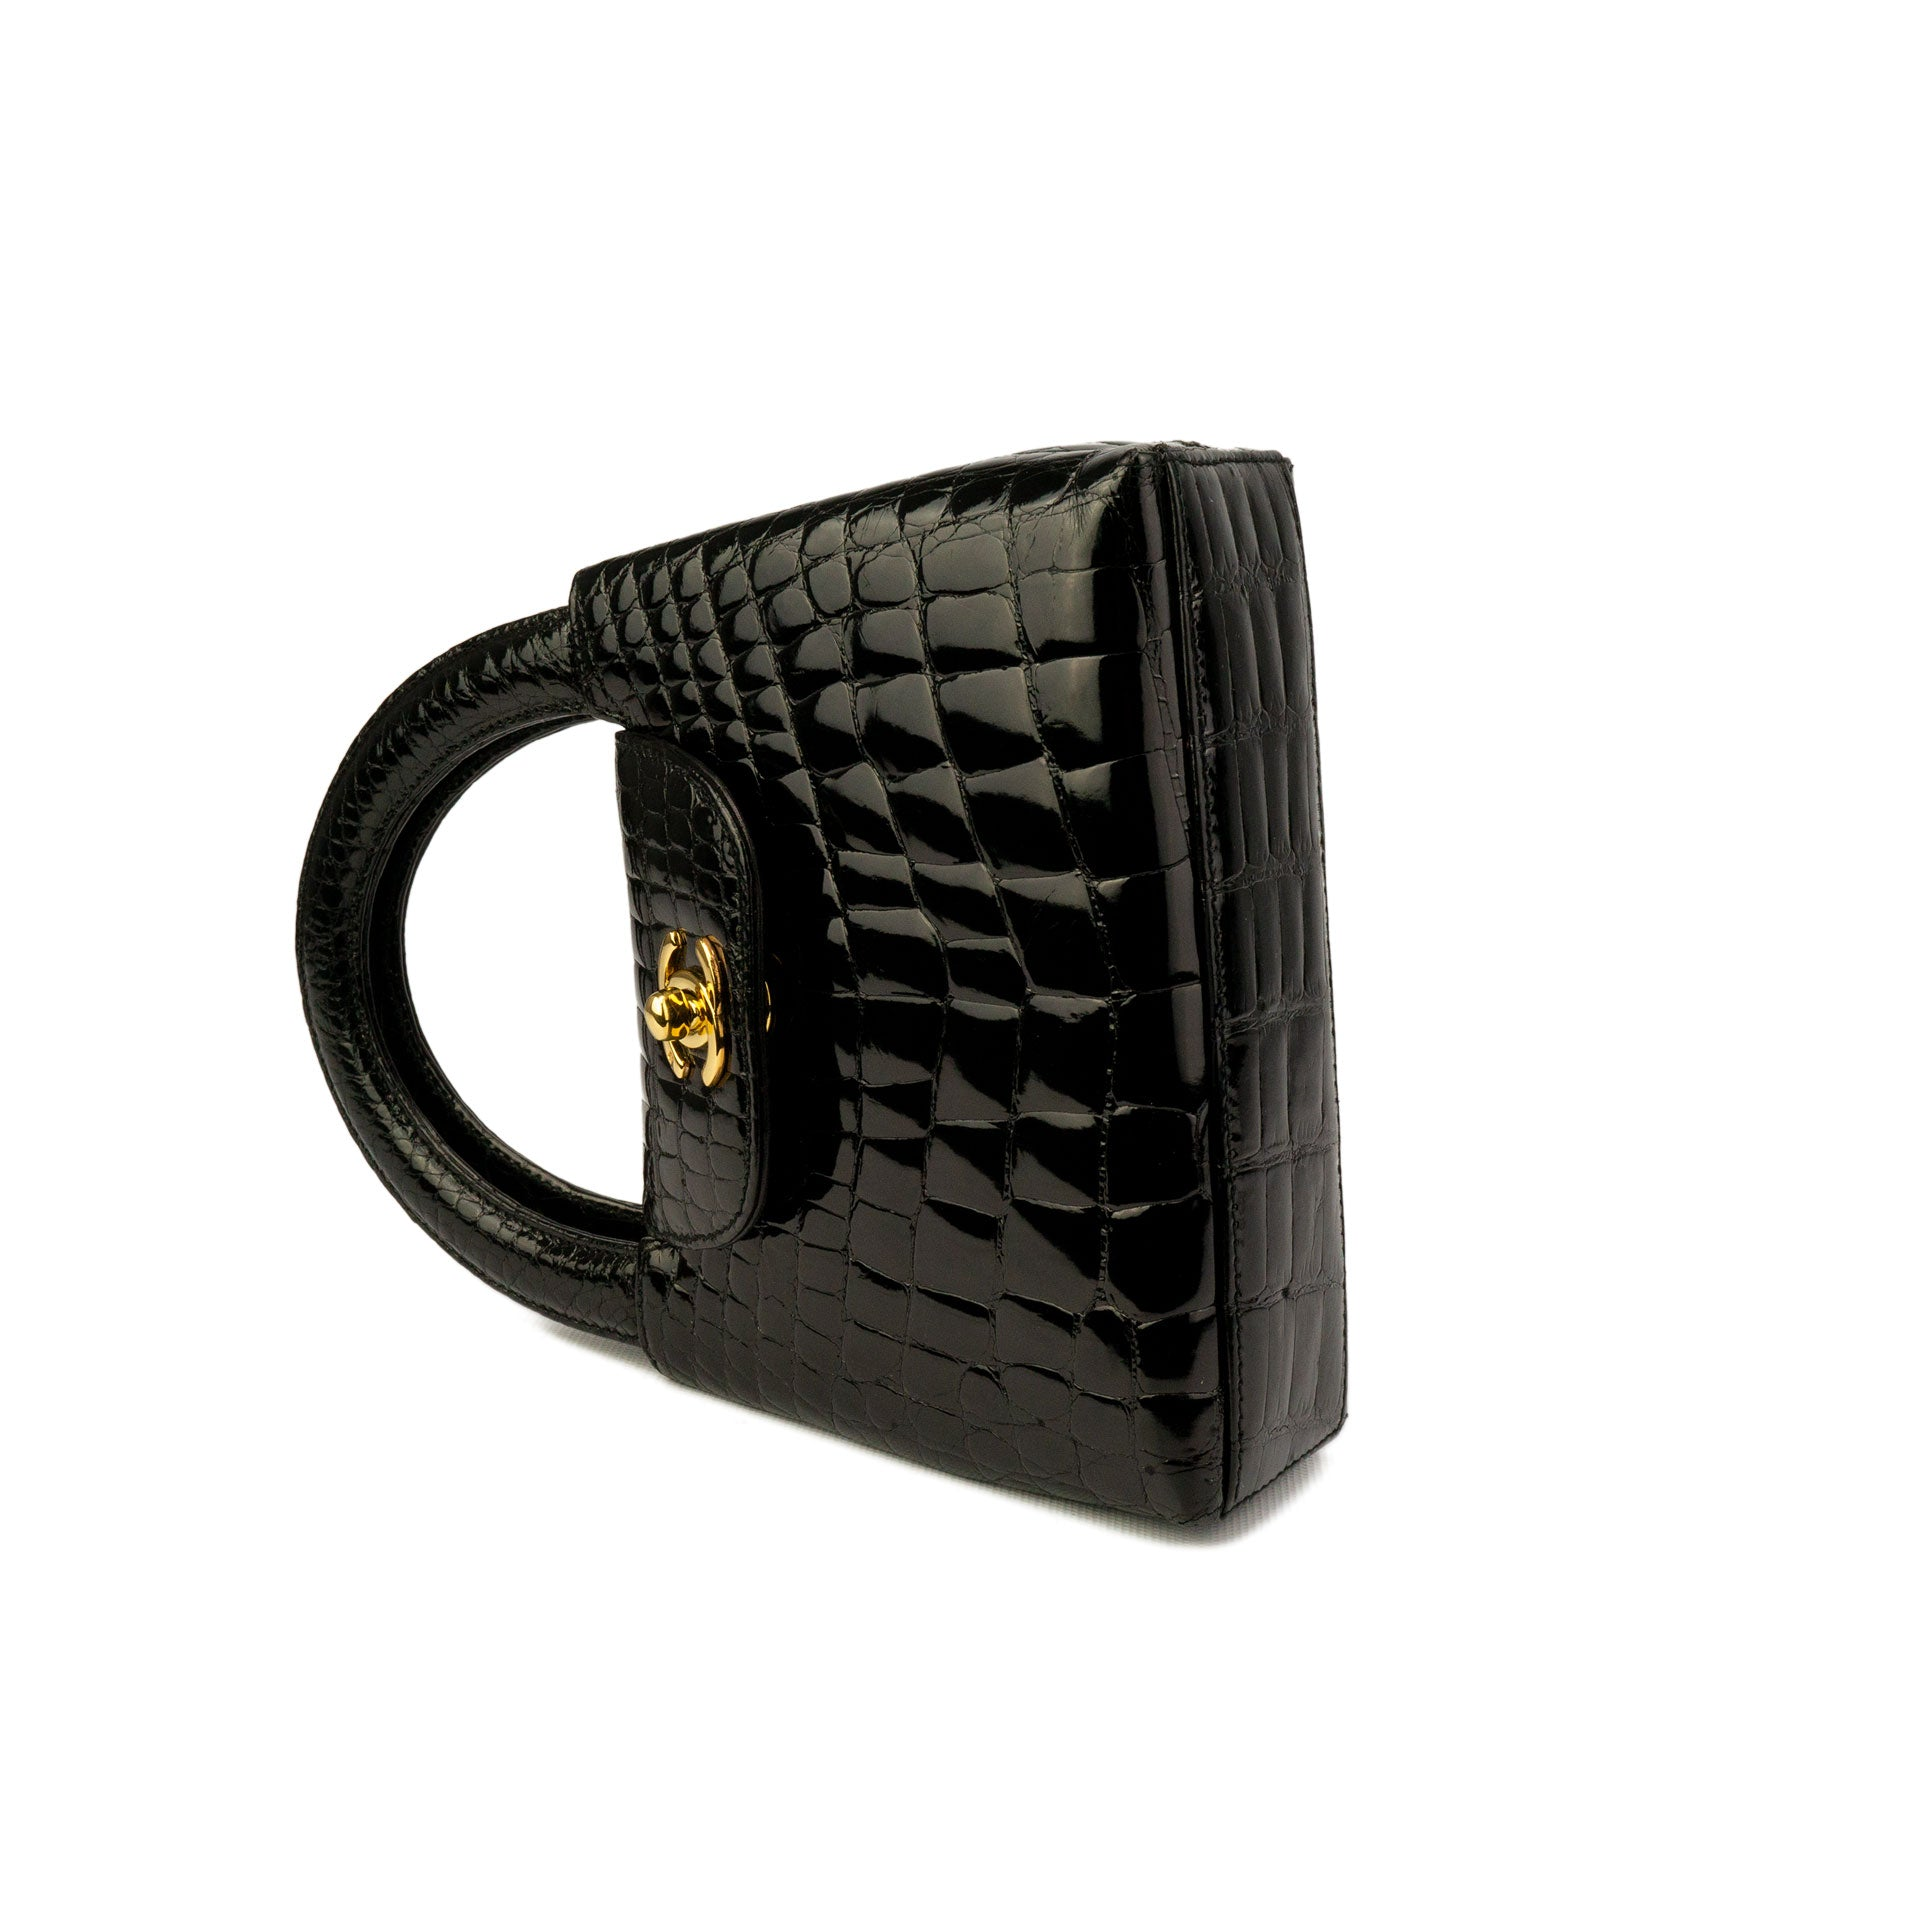 Chanel Black Crocodile Vintage Micro Mini Kelly Clutch